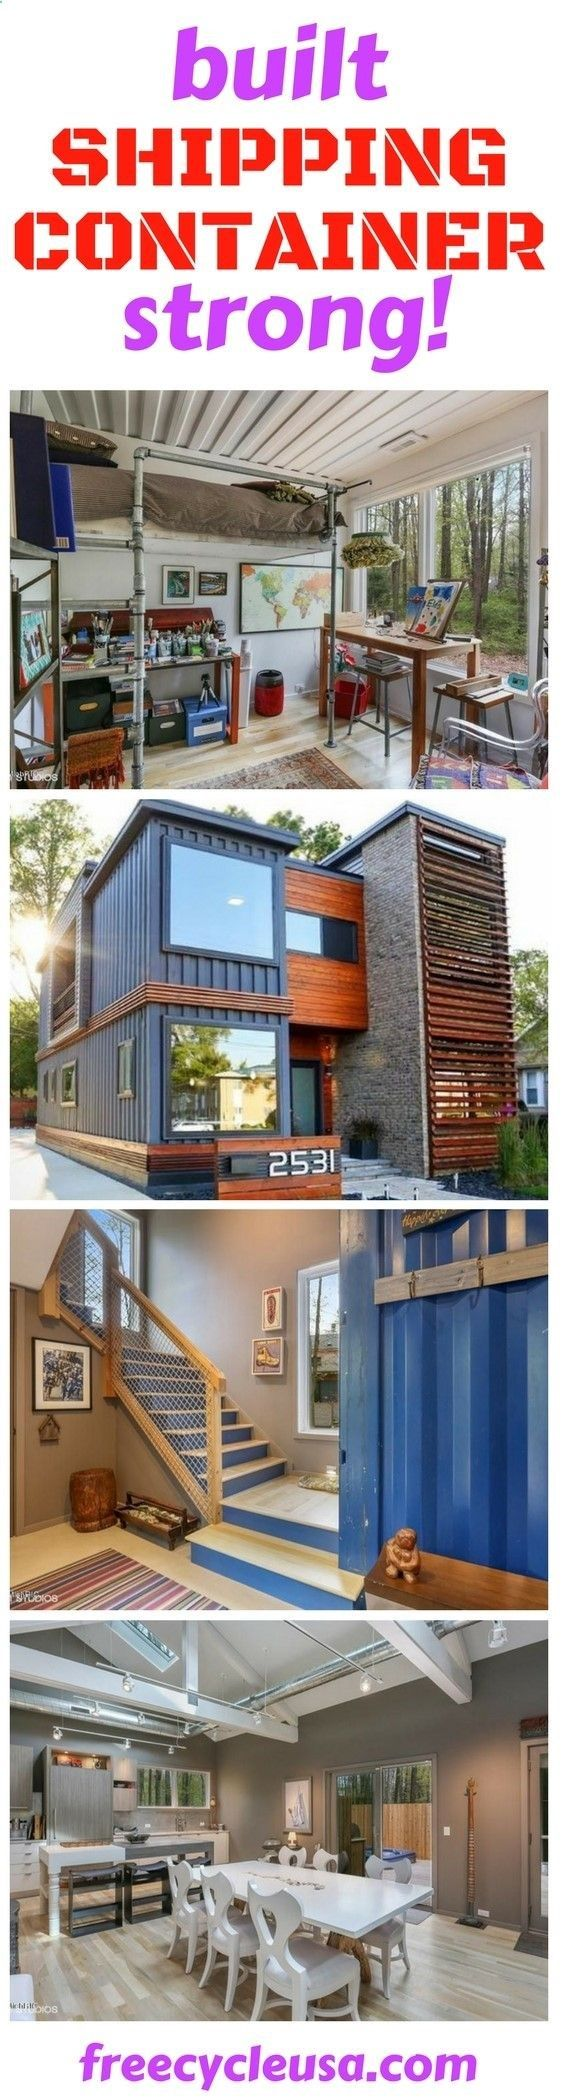 974 best Shipping Container Houses images on Pinterest | Container ...